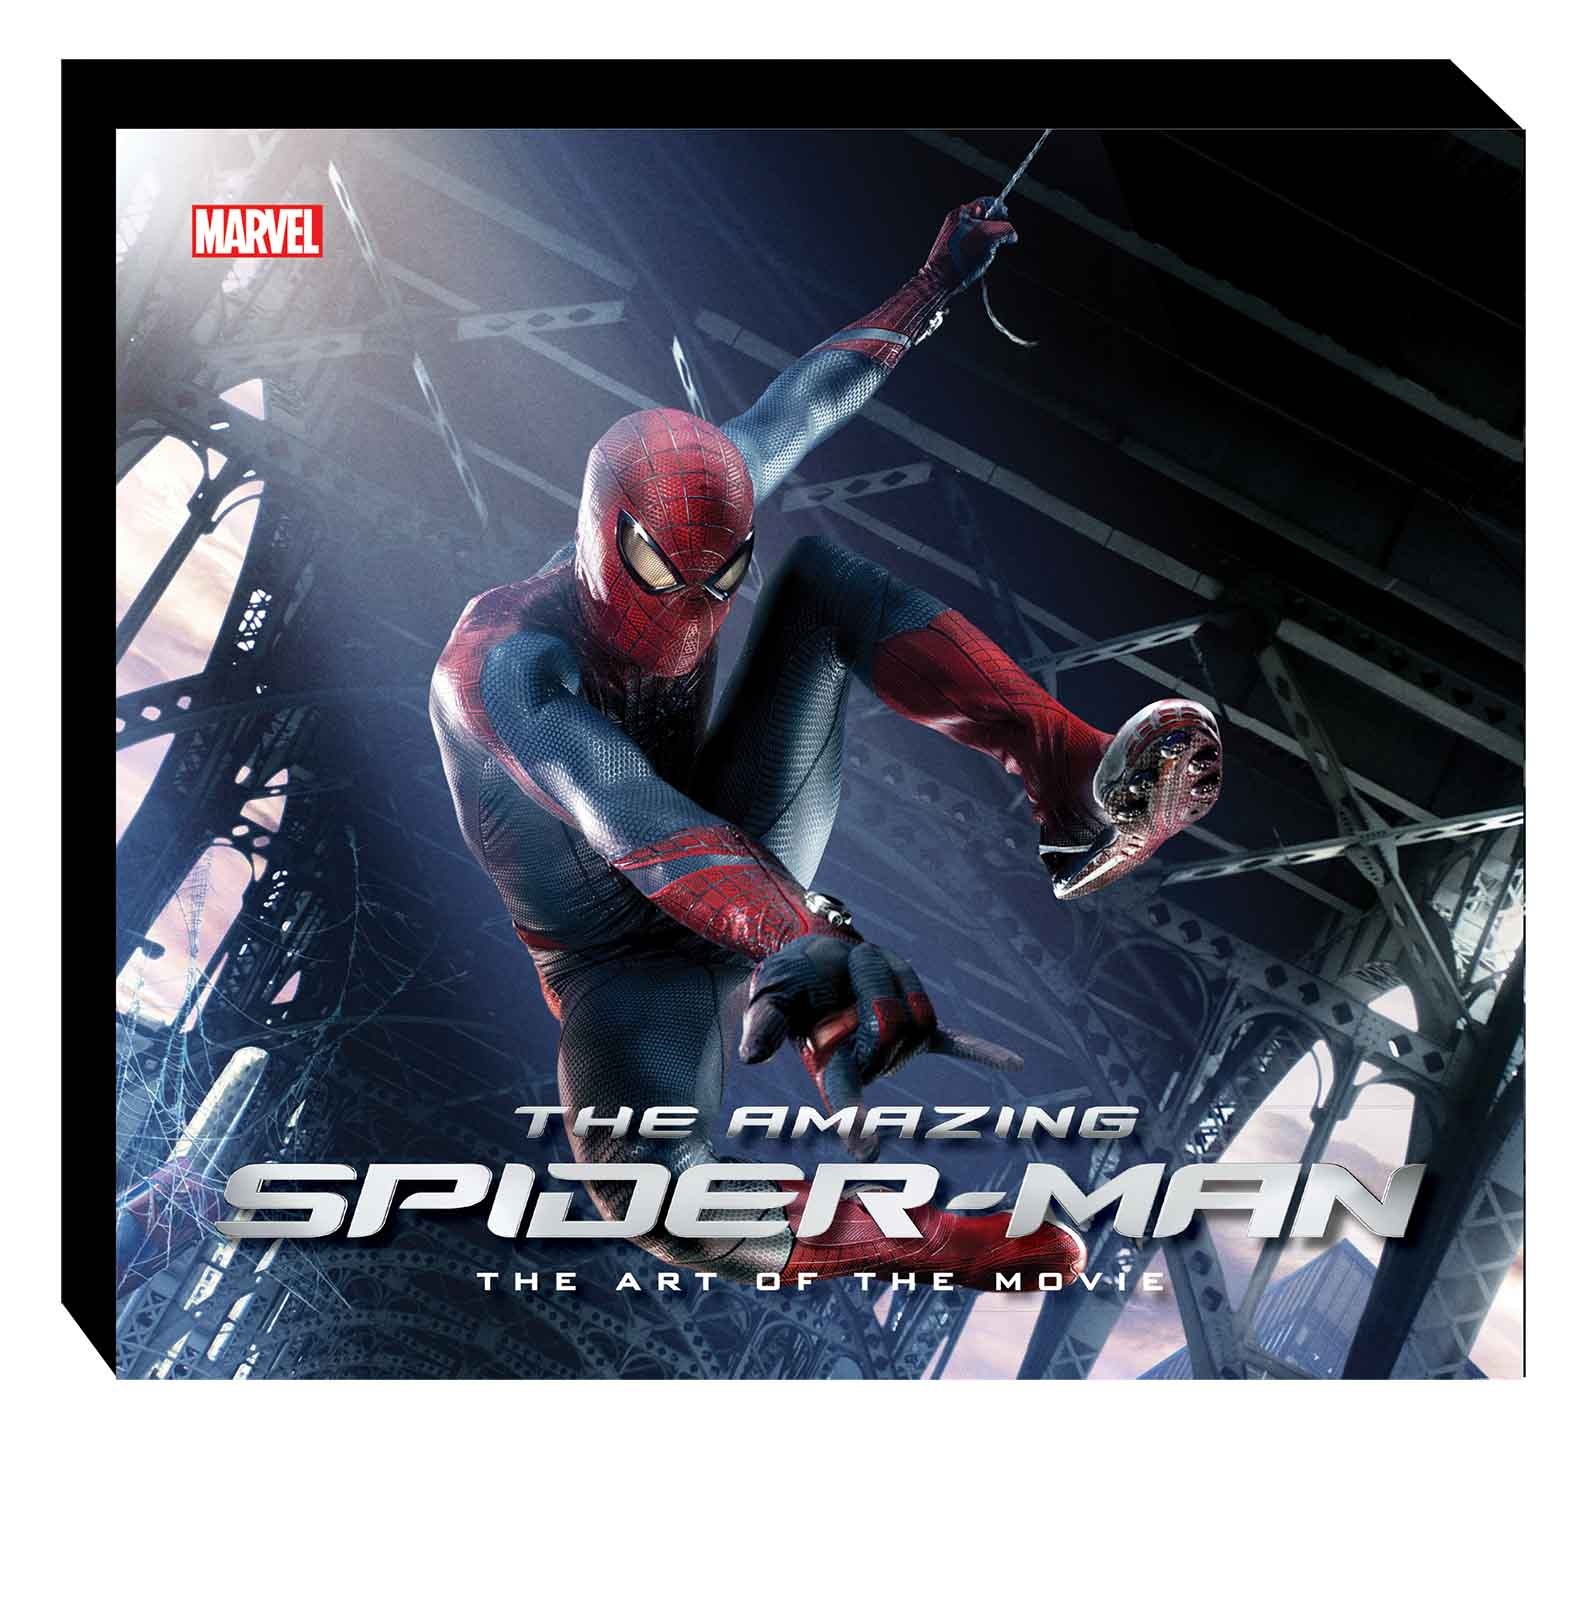 The Amazing Spider-Man: The Art of the Movie (Hardcover)